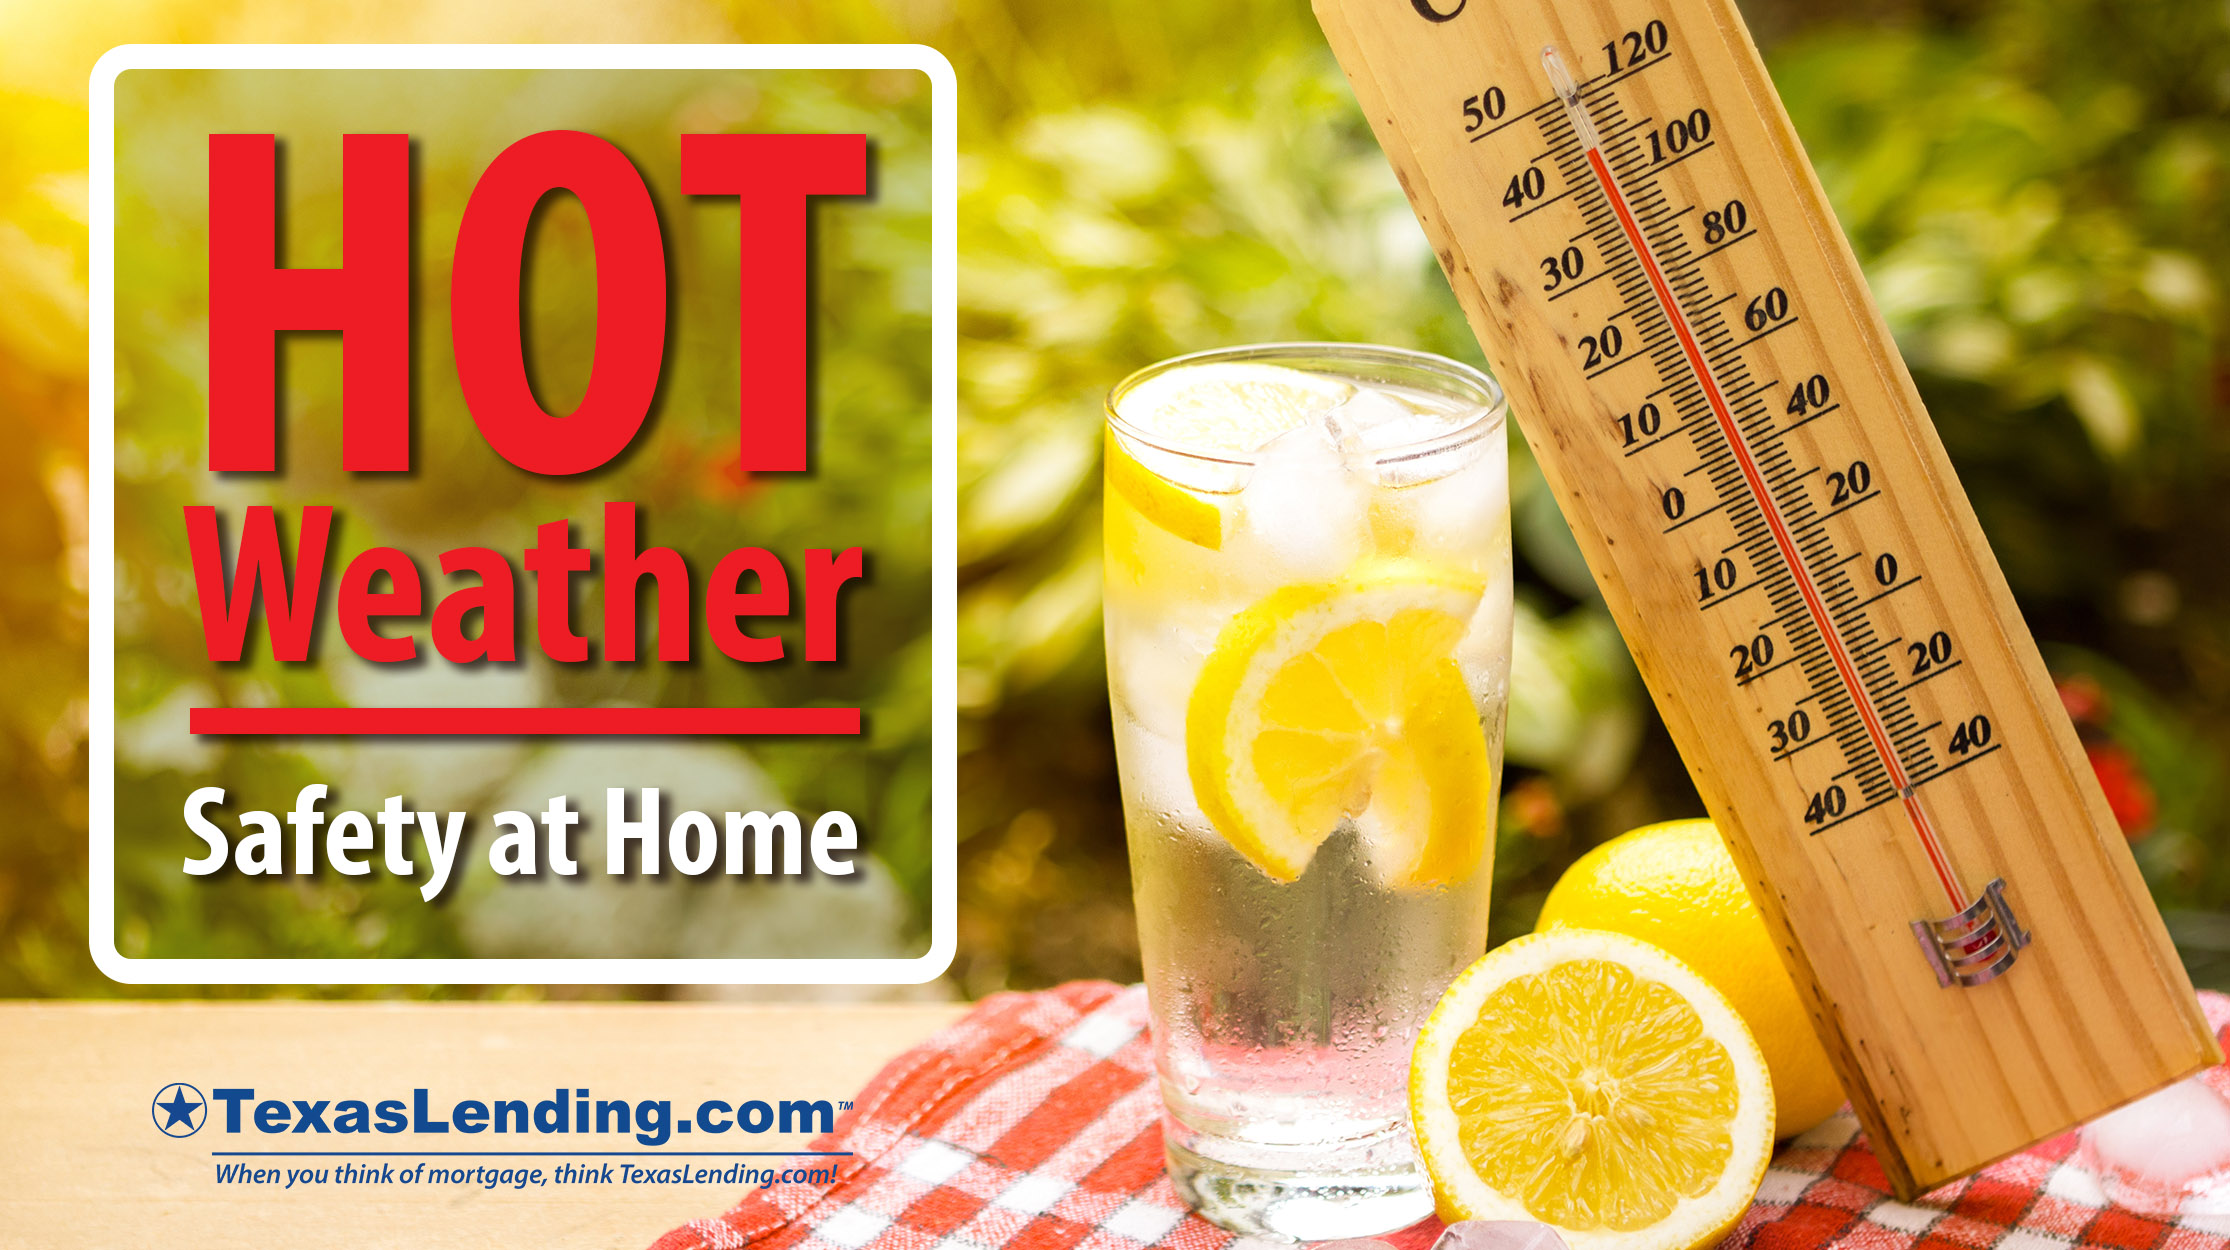 Hot Weather Safety at Home